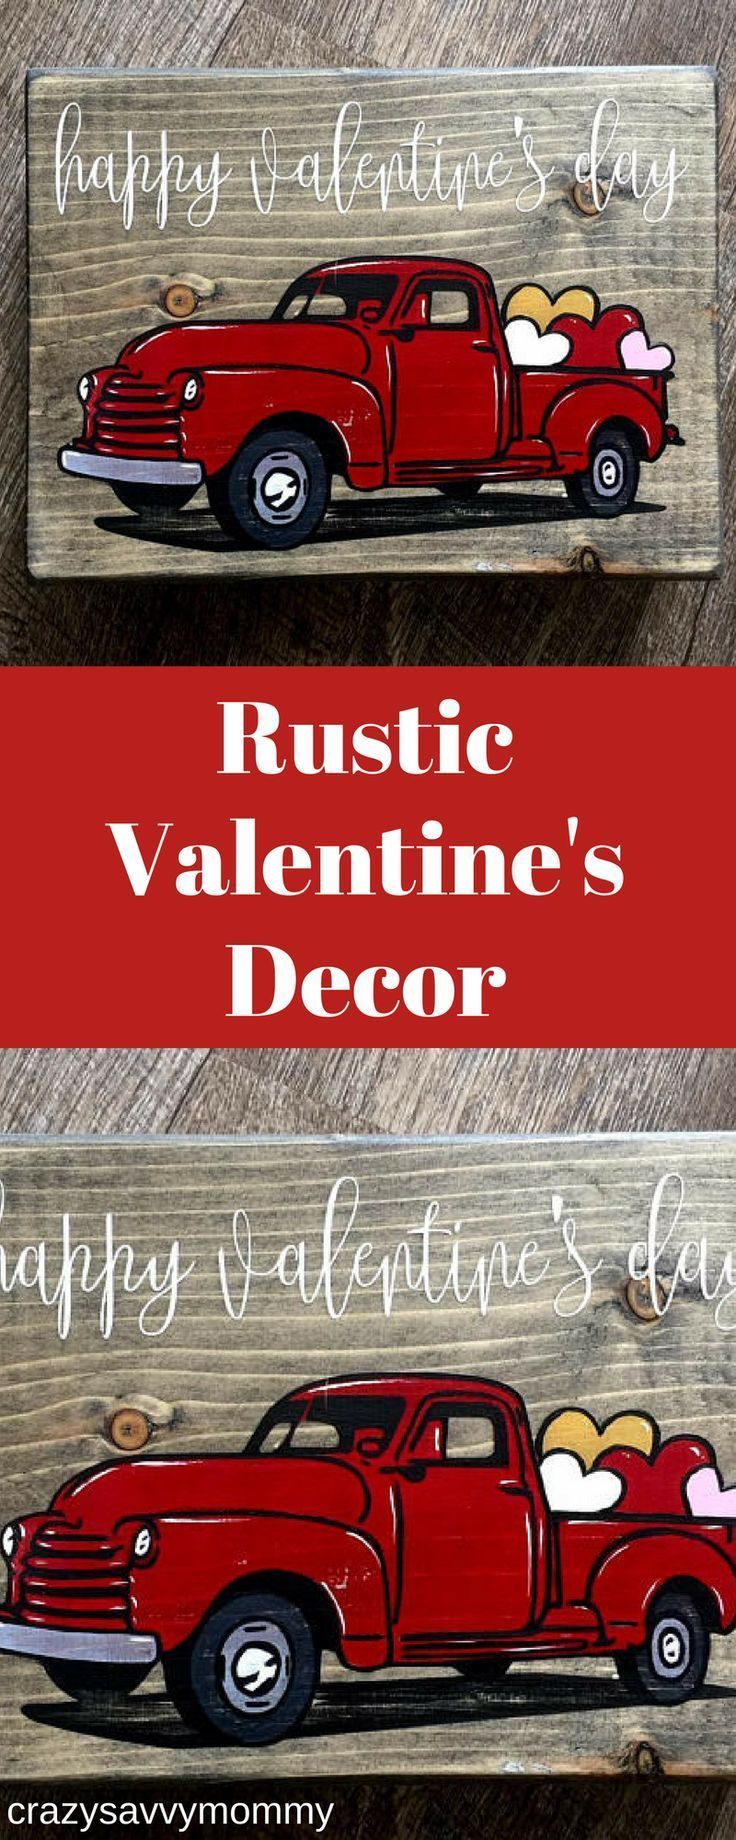 Rustic Valentine S Day Decor Super Cute Red Truck Filled With Hearts Makes The Perfect Shelf Or Rustic Valentine Rustic Valentine Decor Valentine Decorations